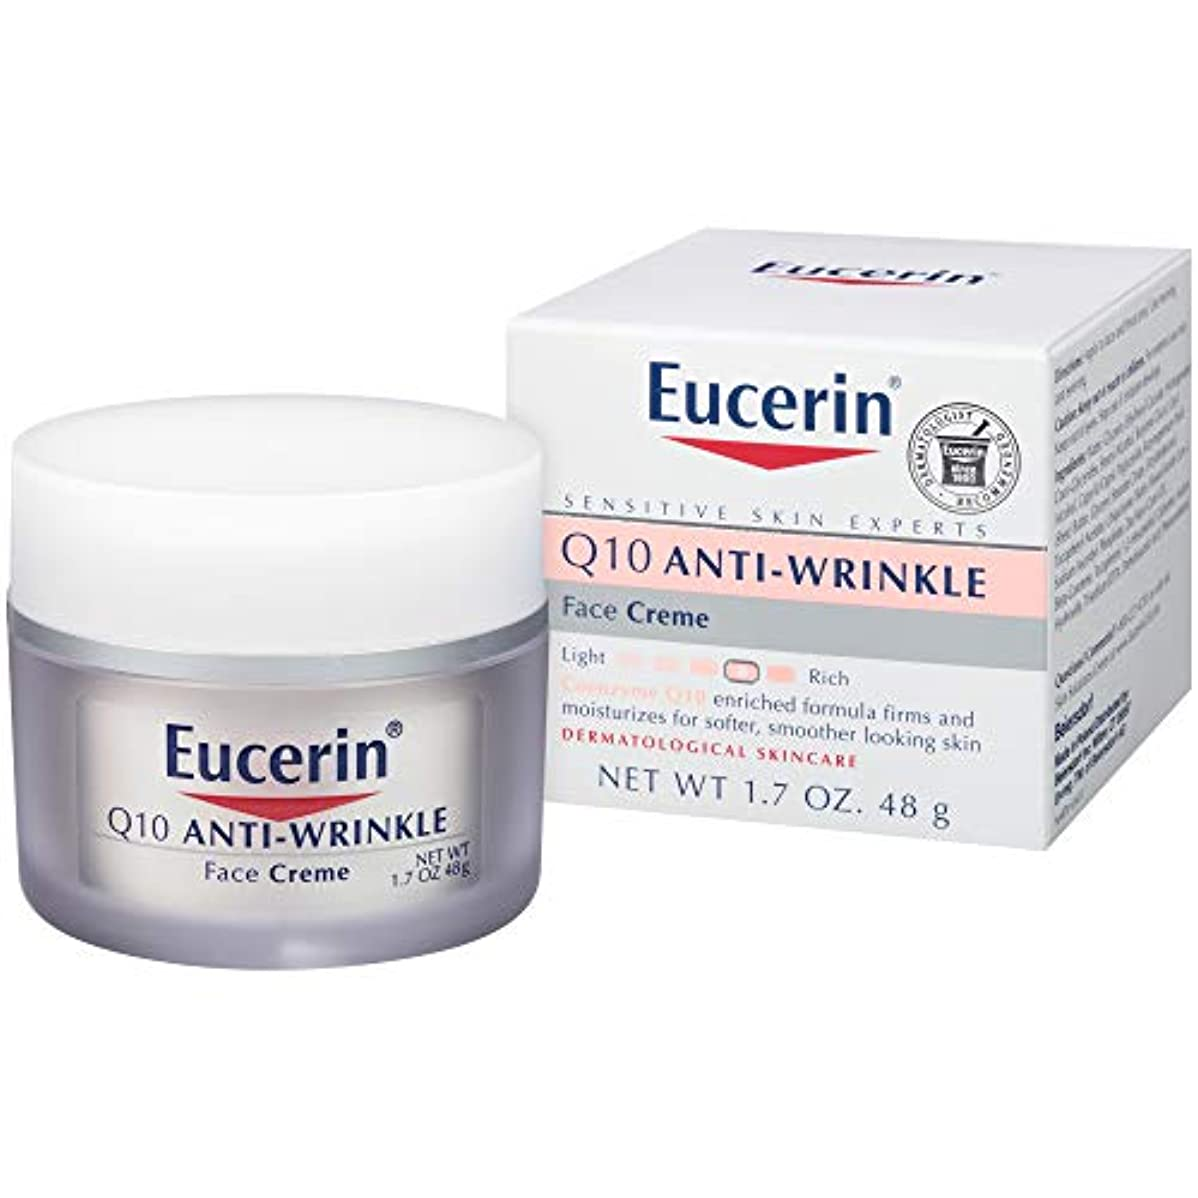 芸術的解決するぶら下がるEucerin Sensitive Facial Skin Q10 Anti-Wrinkle Sensitive Skin Creme 48g (並行輸入品)